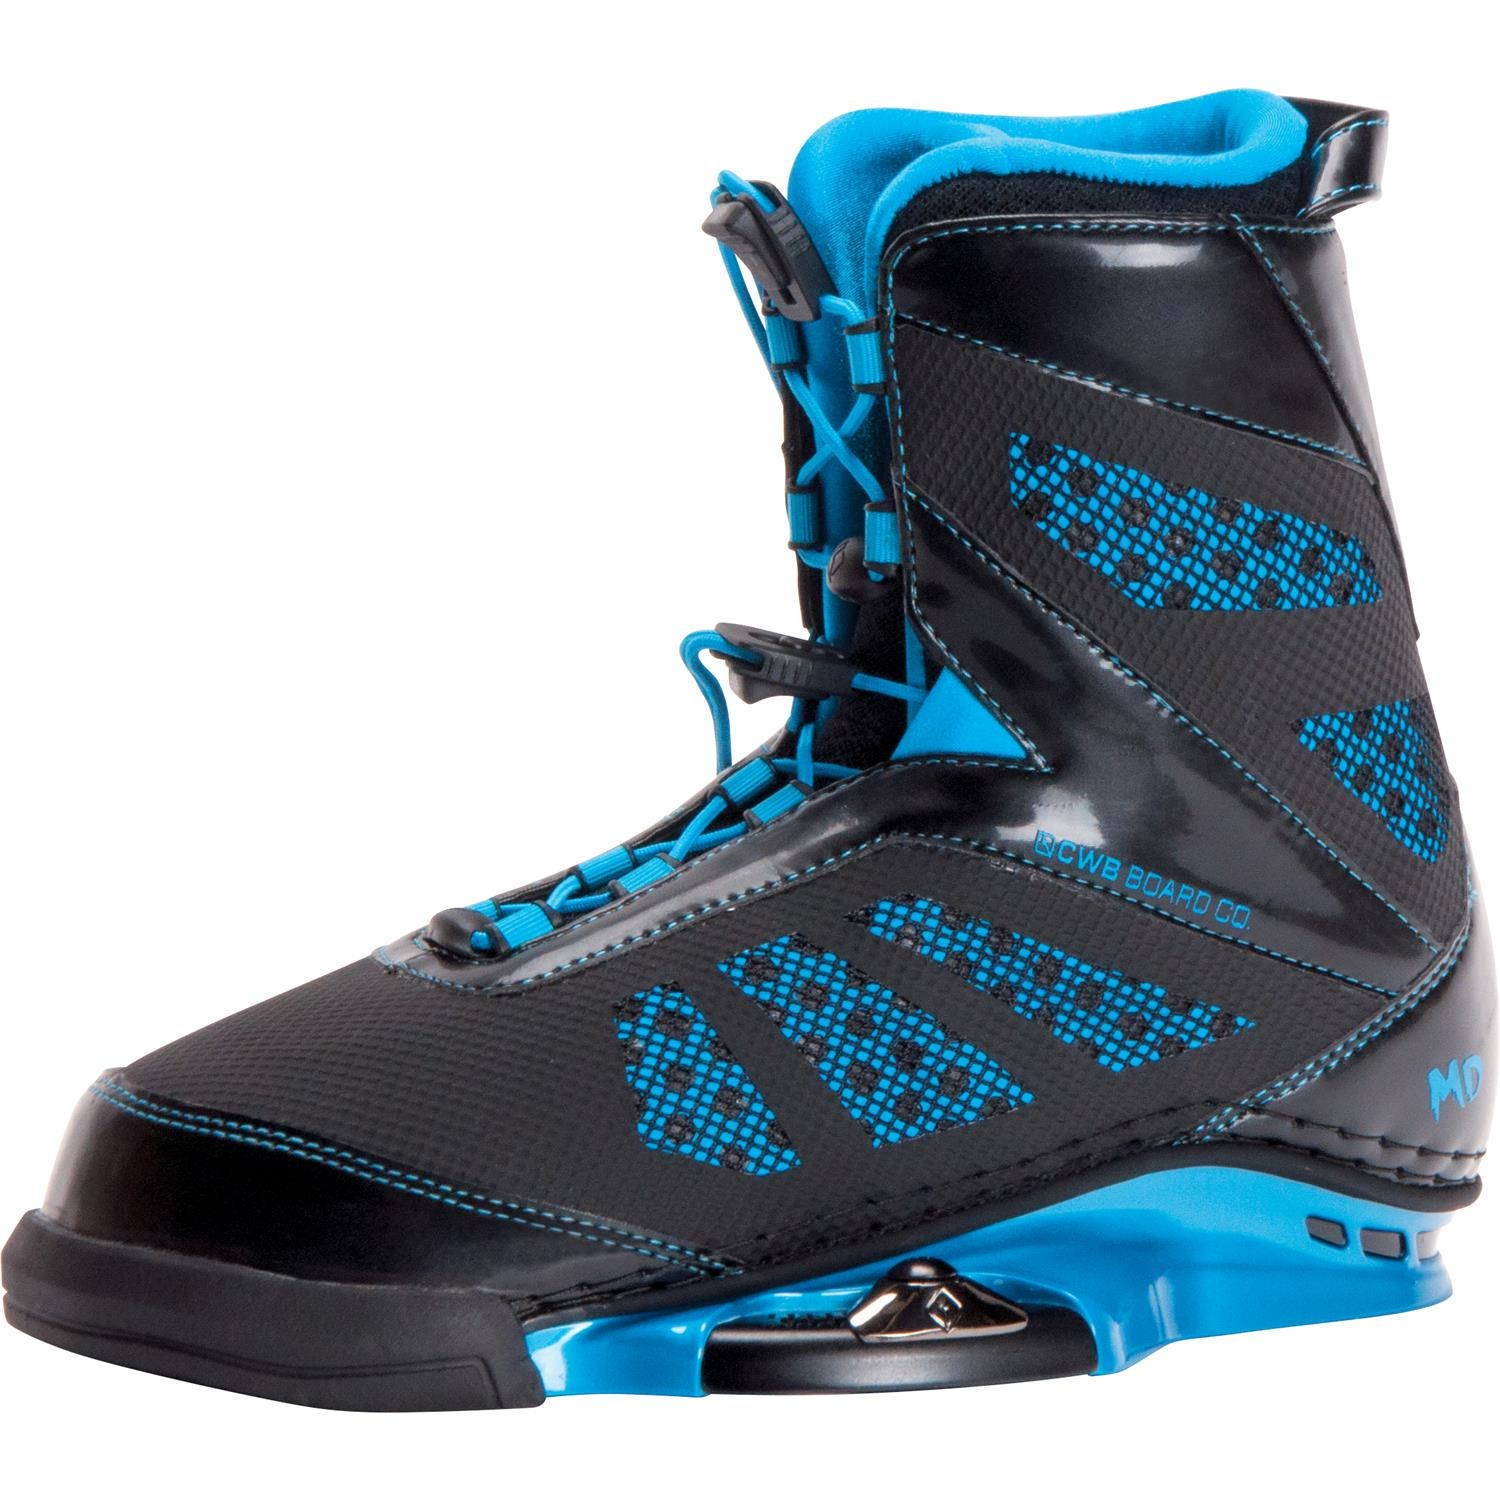 CWB Dowdy Wakeboard + MD Bindings 2014